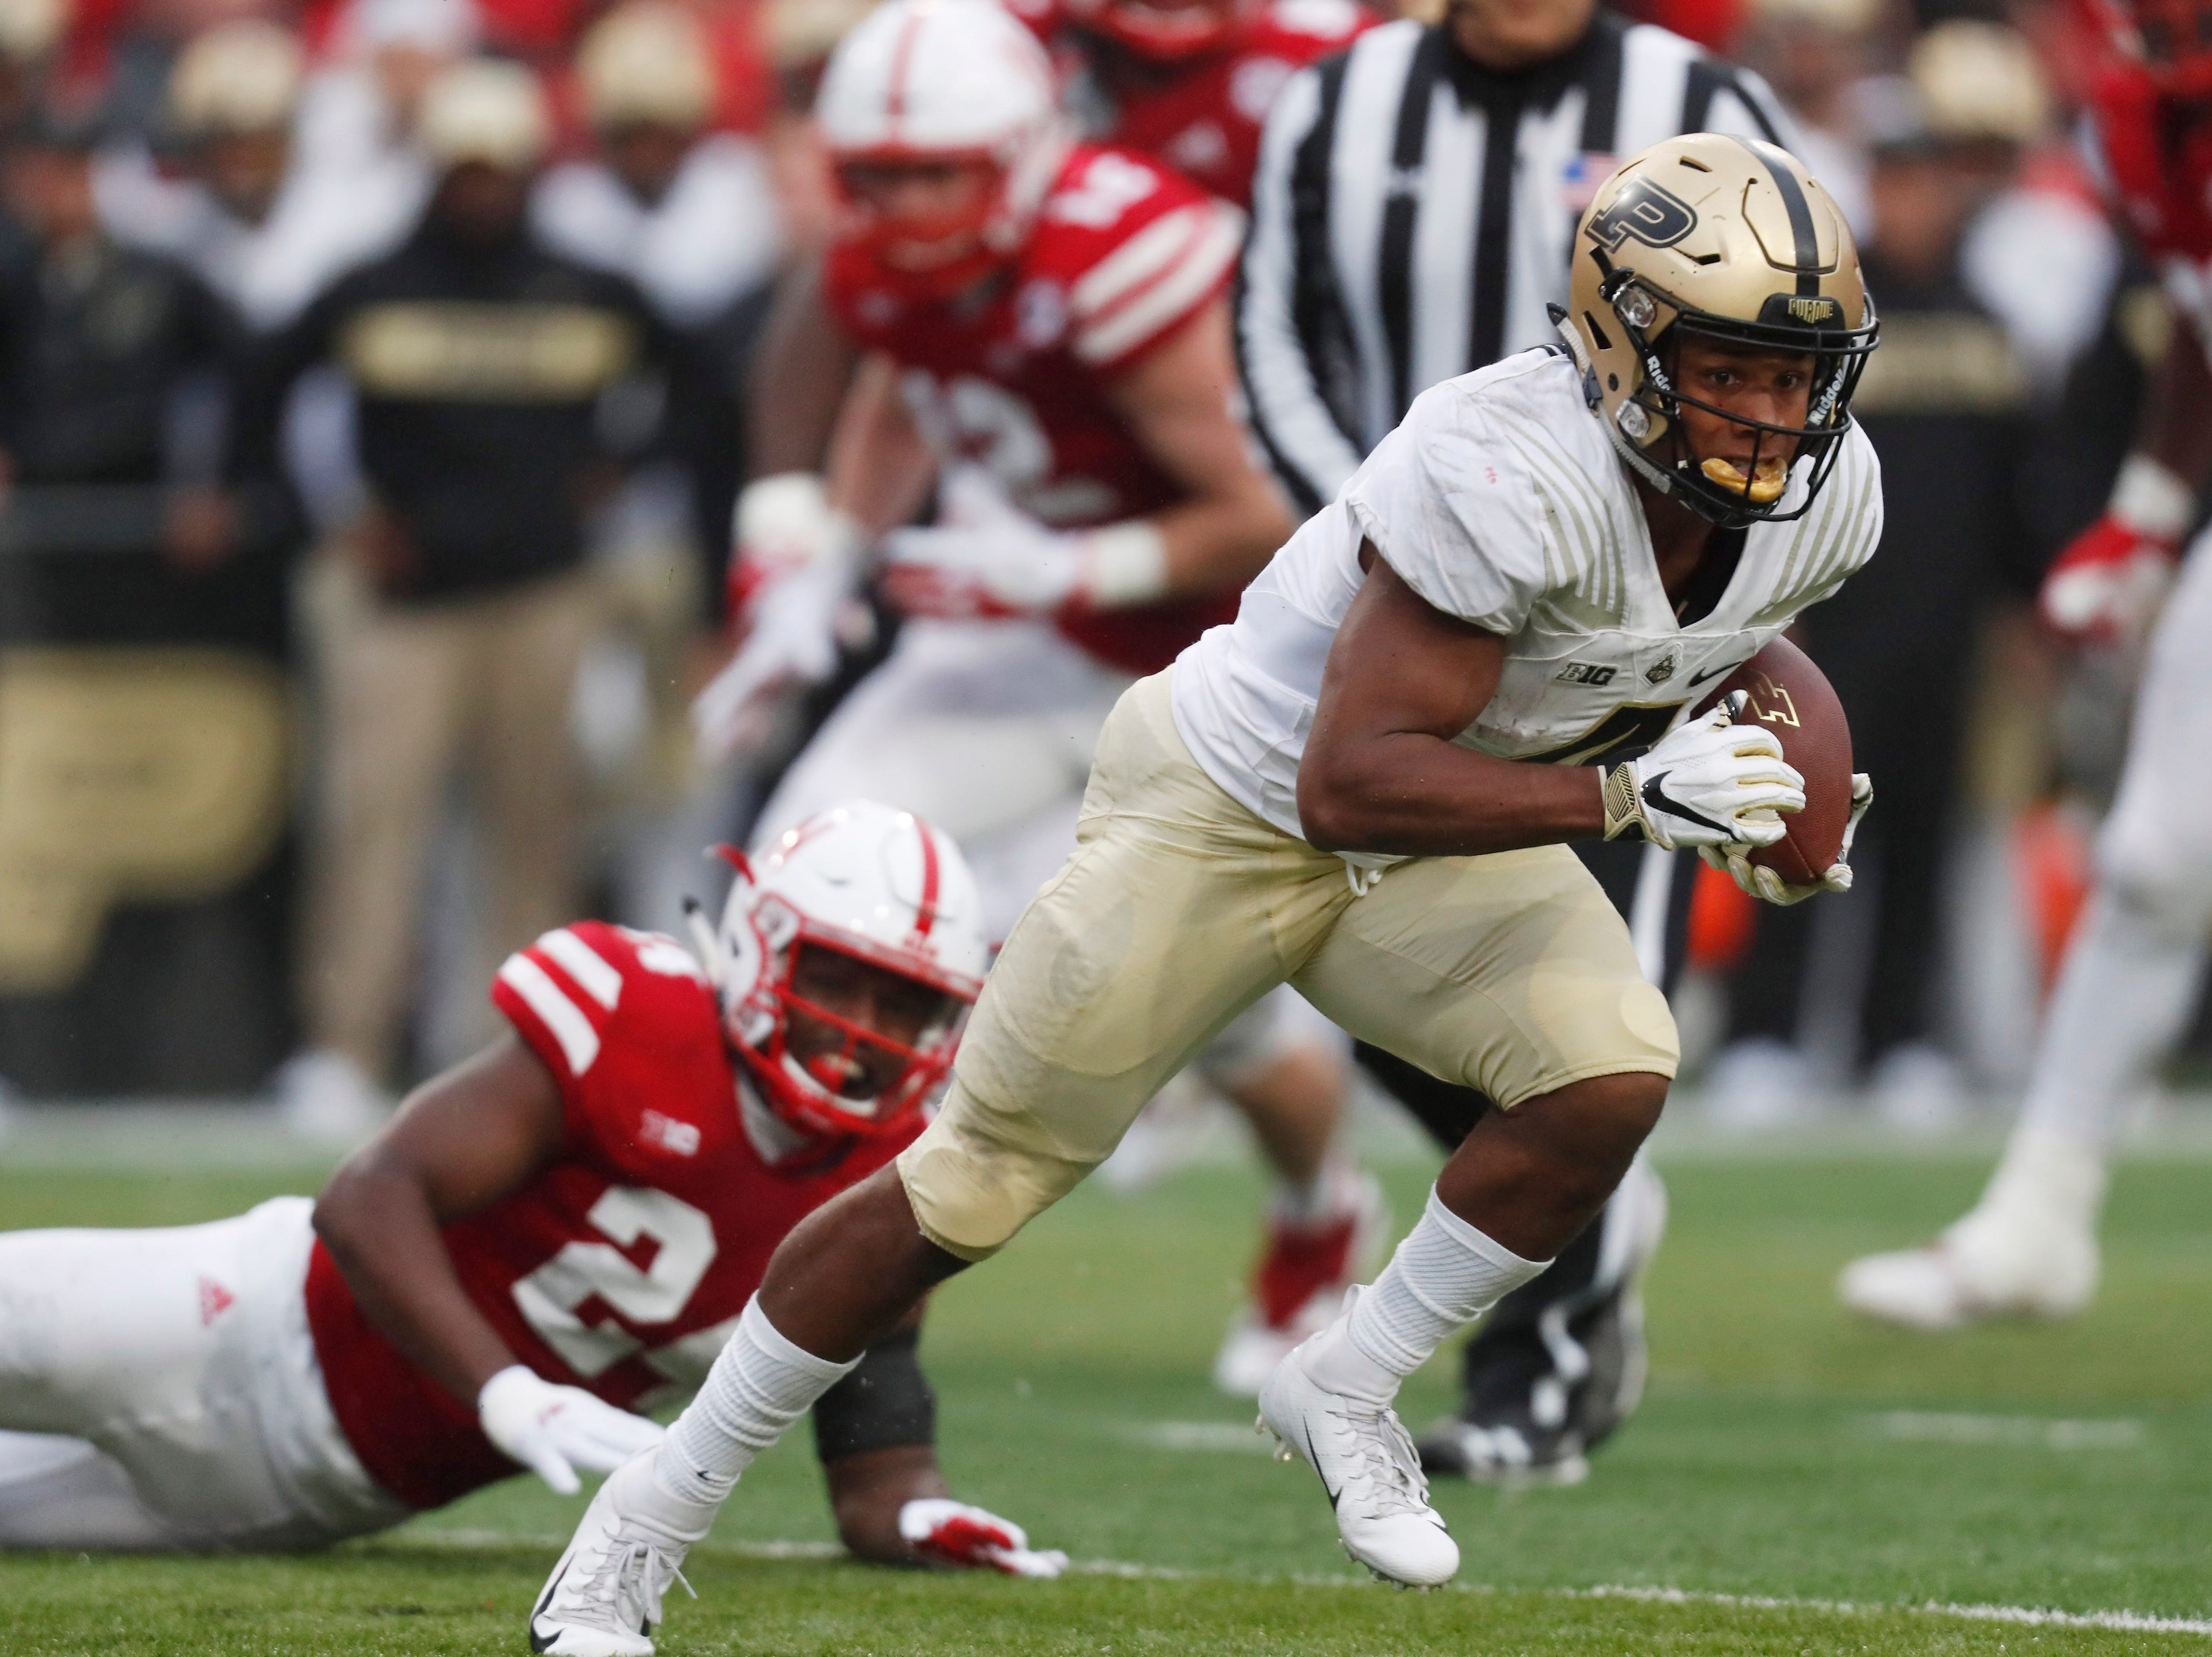 Sep 29, 2018; Lincoln, NE, USA; Purdue Boilermakers wide receiver Rondale Moore (4) runs against the Nebraska Cornhuskers in the second half at Memorial Stadium. Purdue won 42-28. Mandatory Credit: Bruce Thorson-USA TODAY Sports